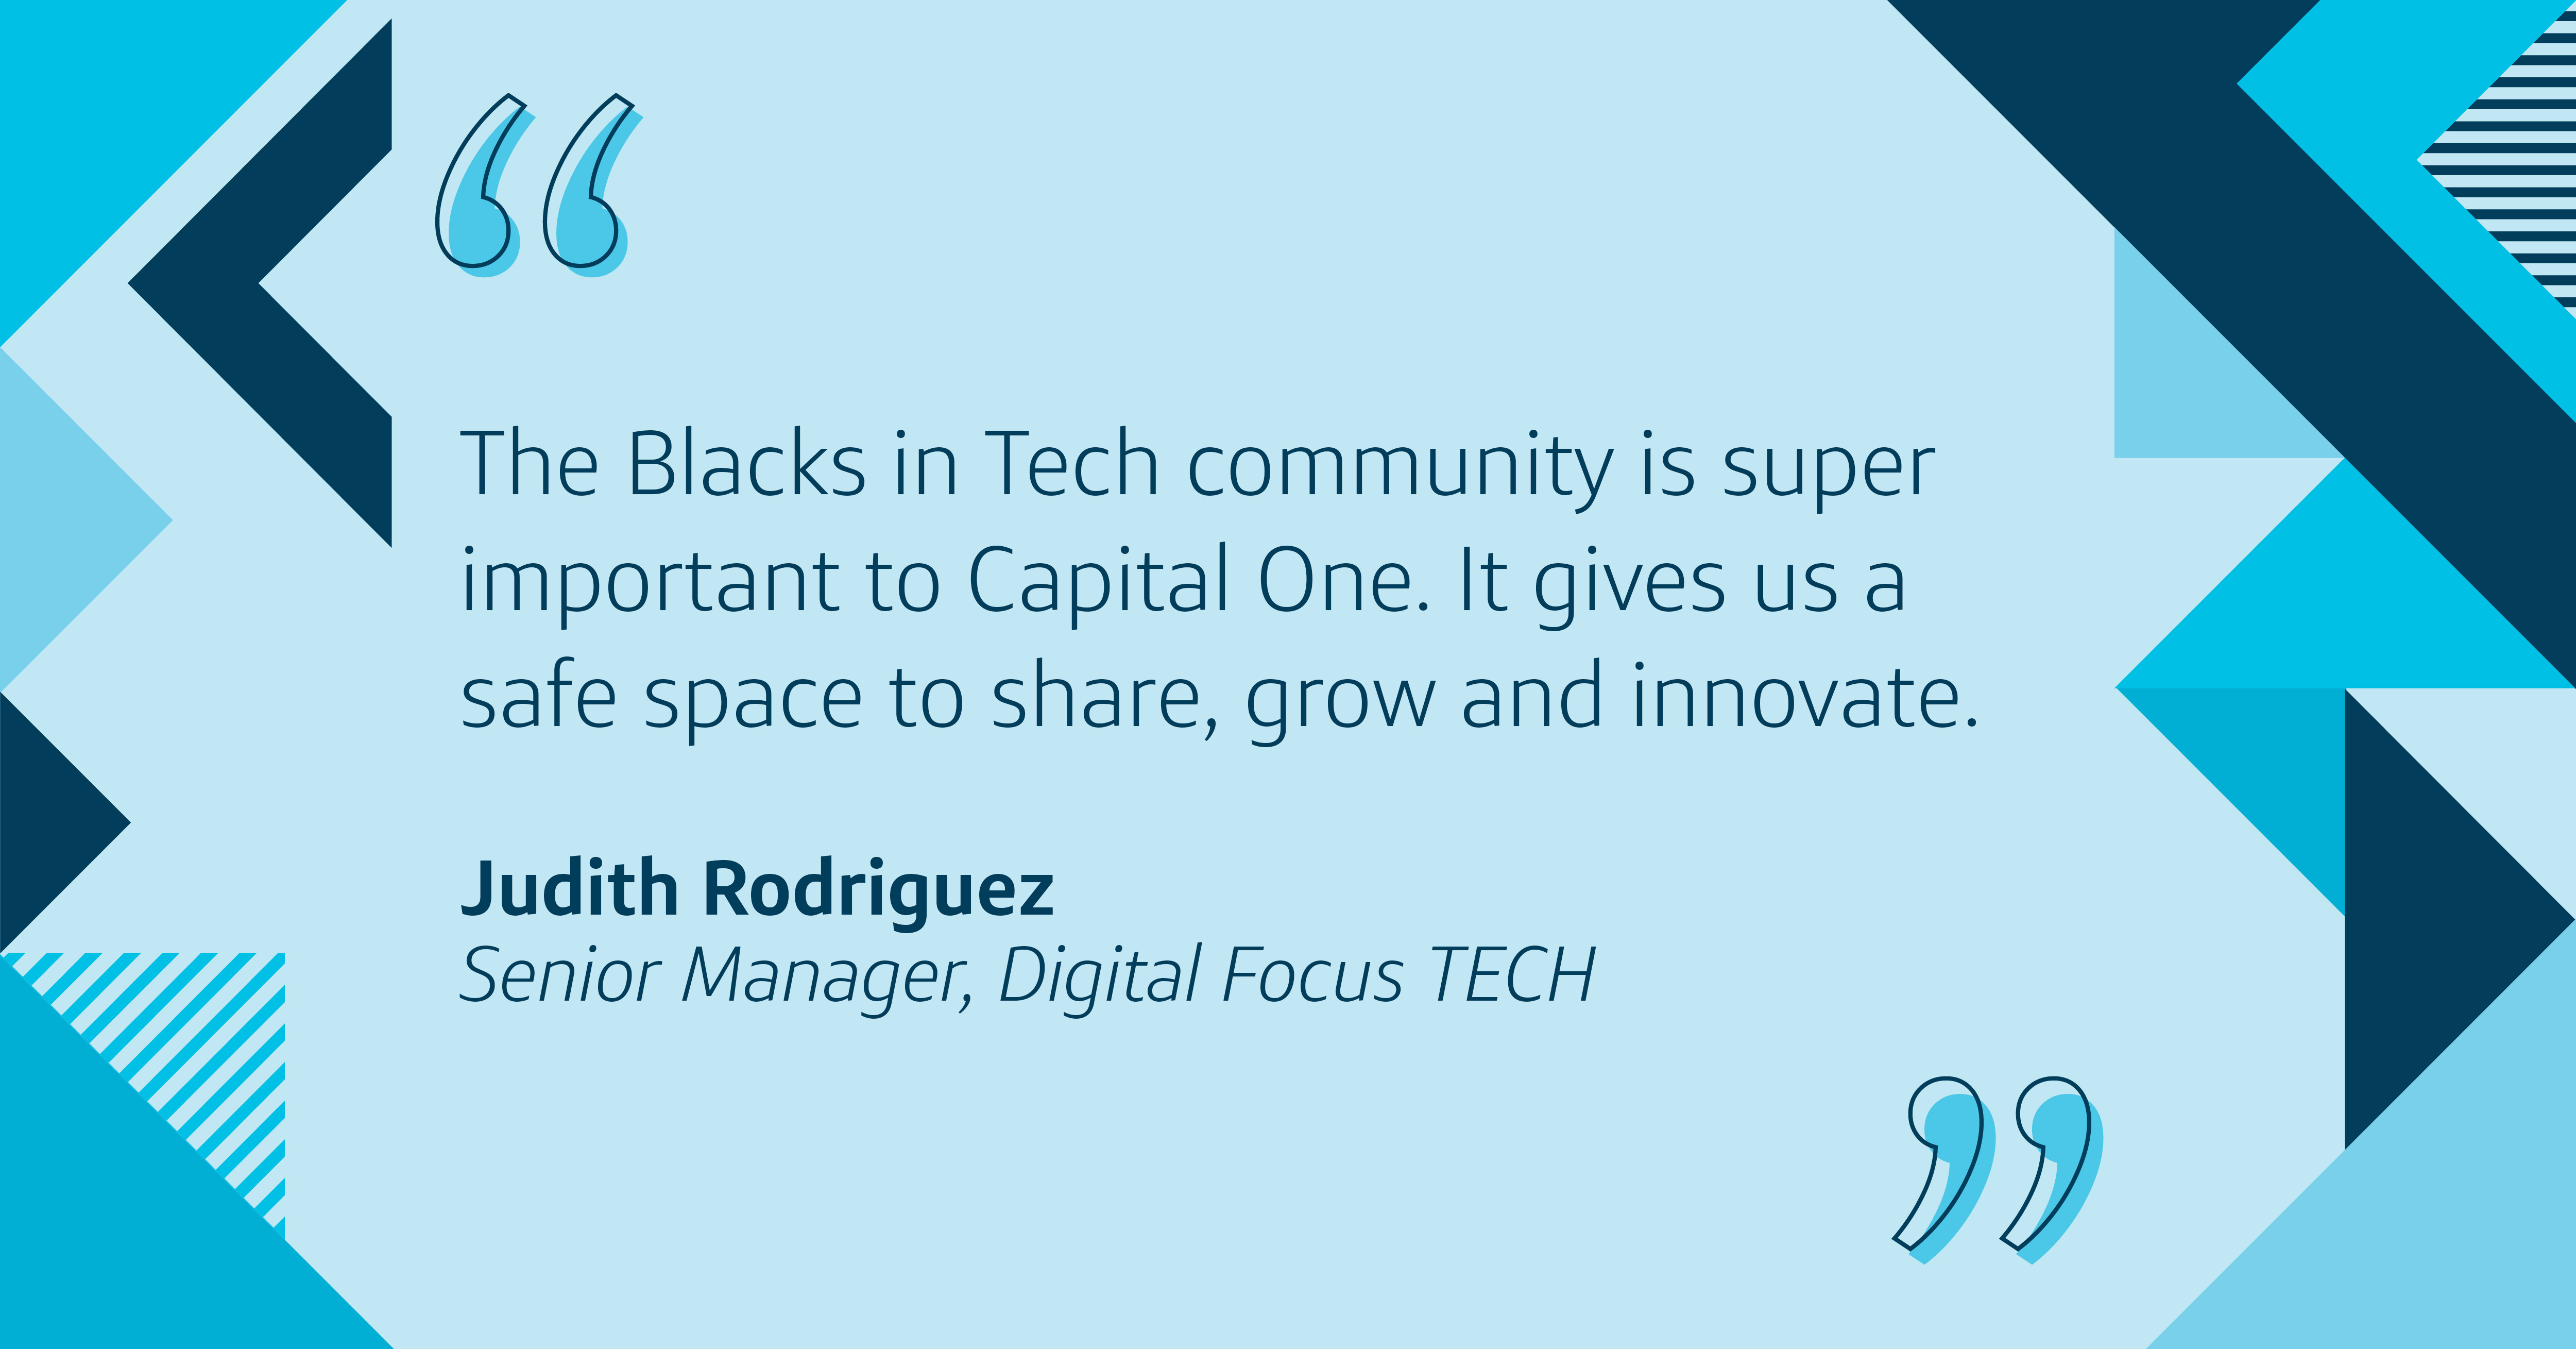 The Blacks in Tech community at Capital One is super important to Capital One. It gives us a safe space to share, grow and innovate.